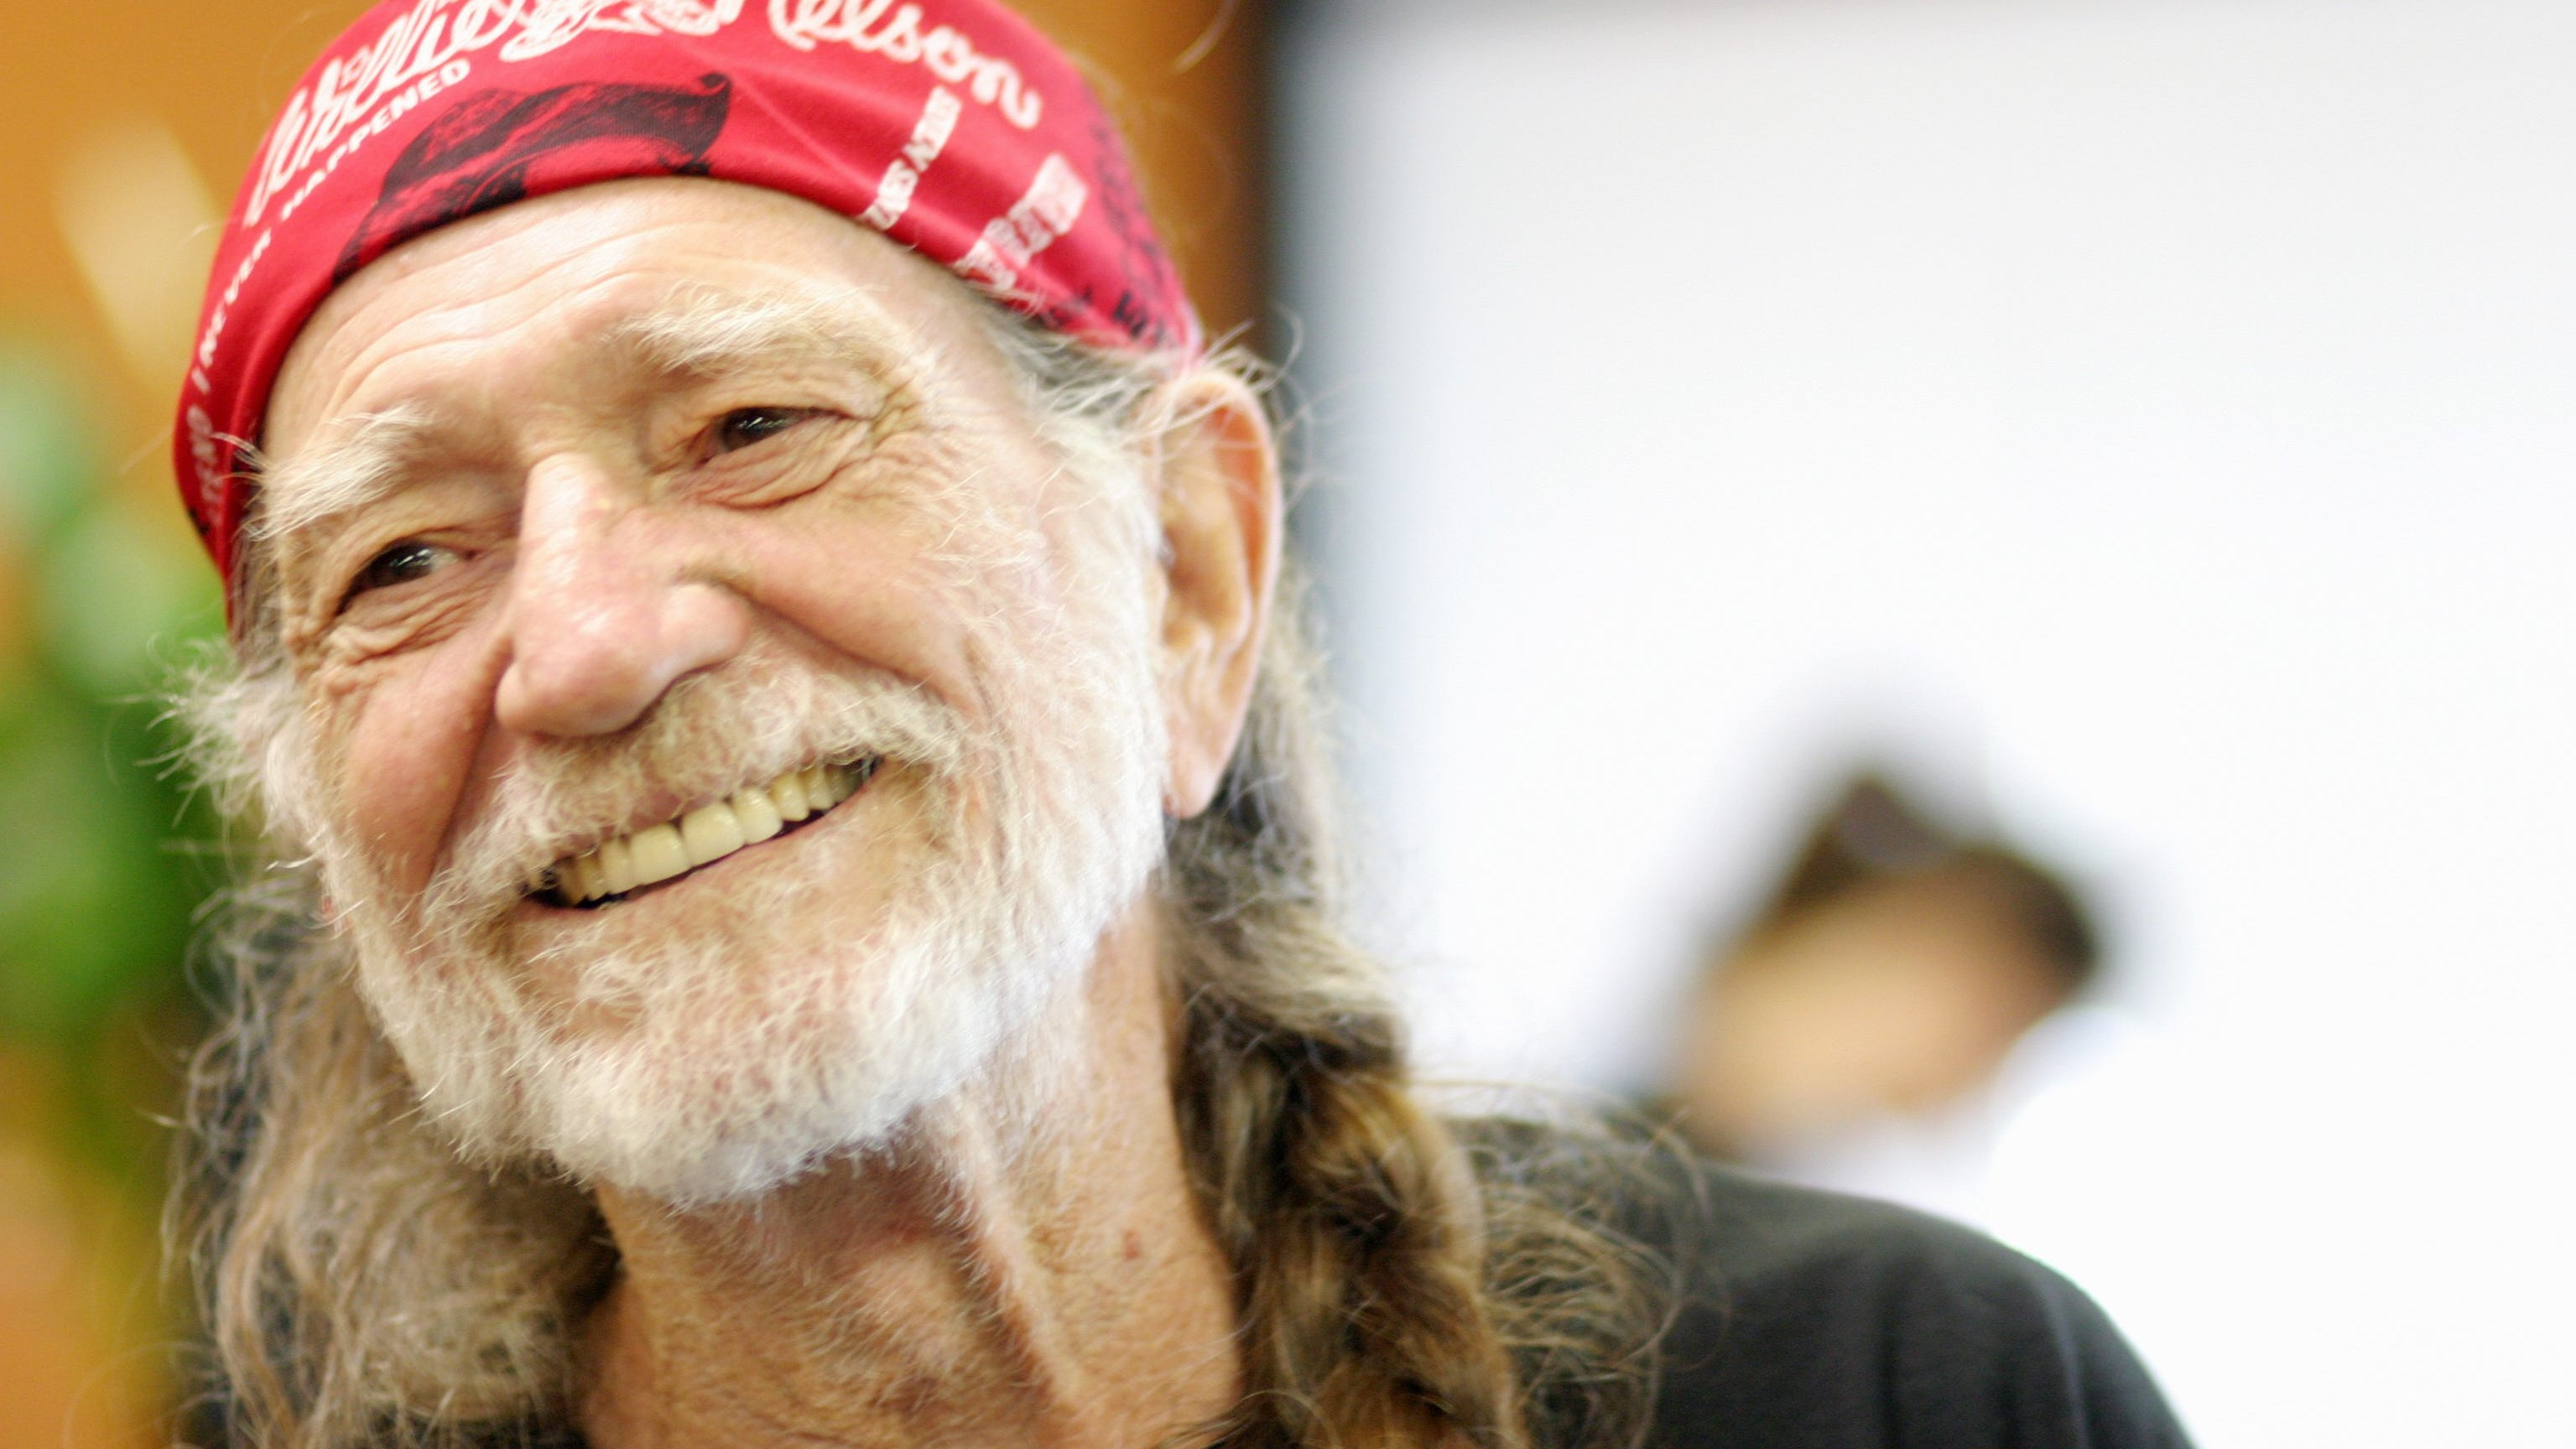 Willie Nelson Received His Covid 19 Vaccine